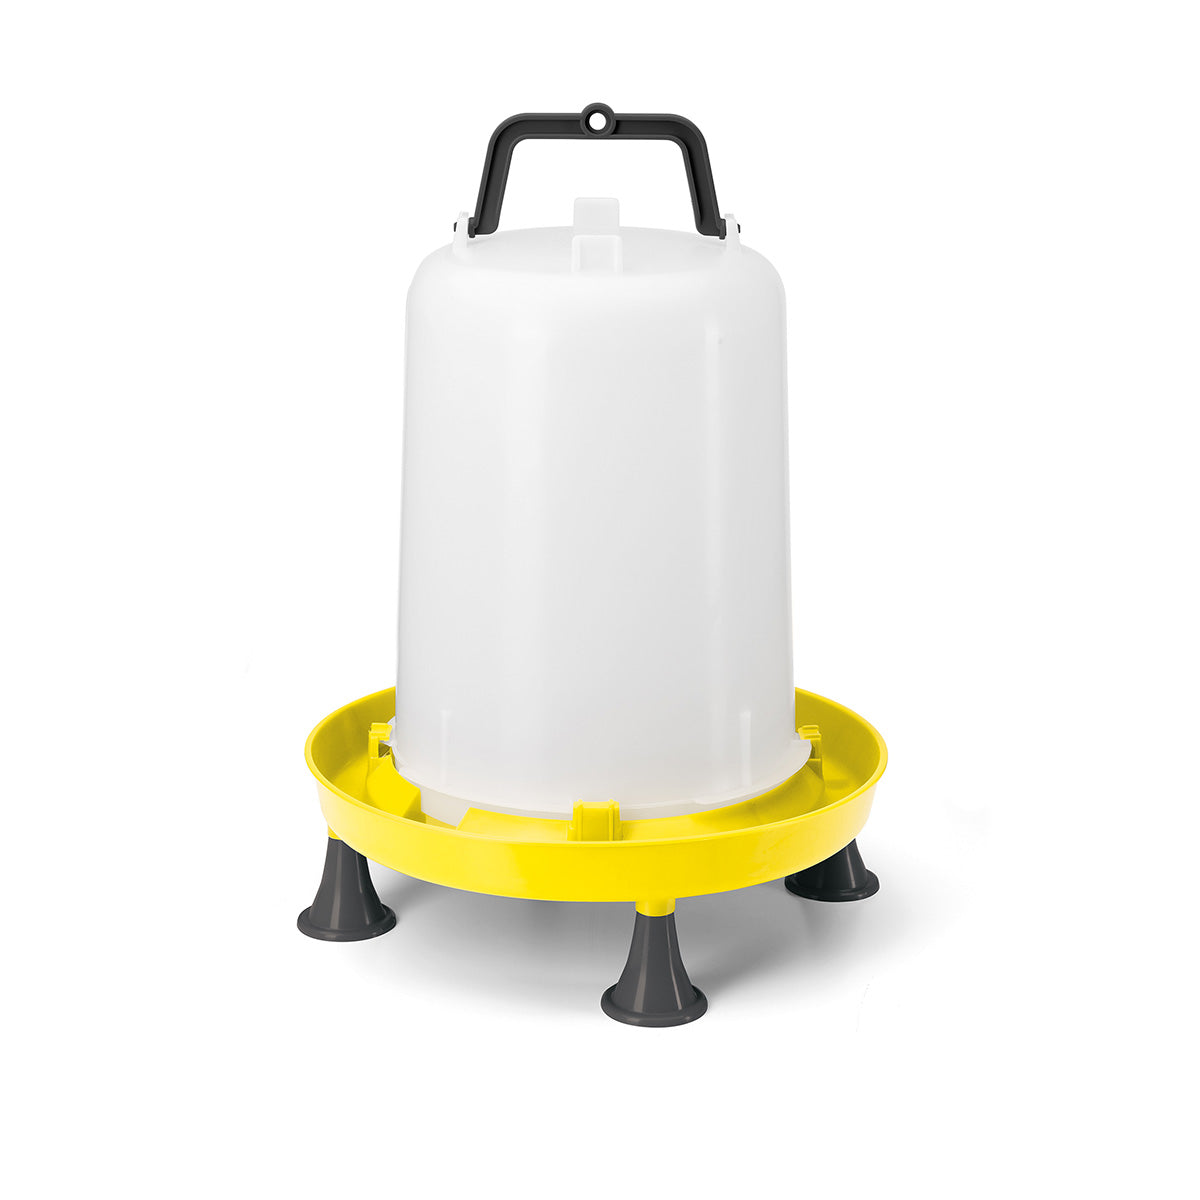 Poultry Drinker with Removable Legs and Handle - Urban-Egg - Poultry Roll Away Nest Boxes, Chicken Feeders, and More